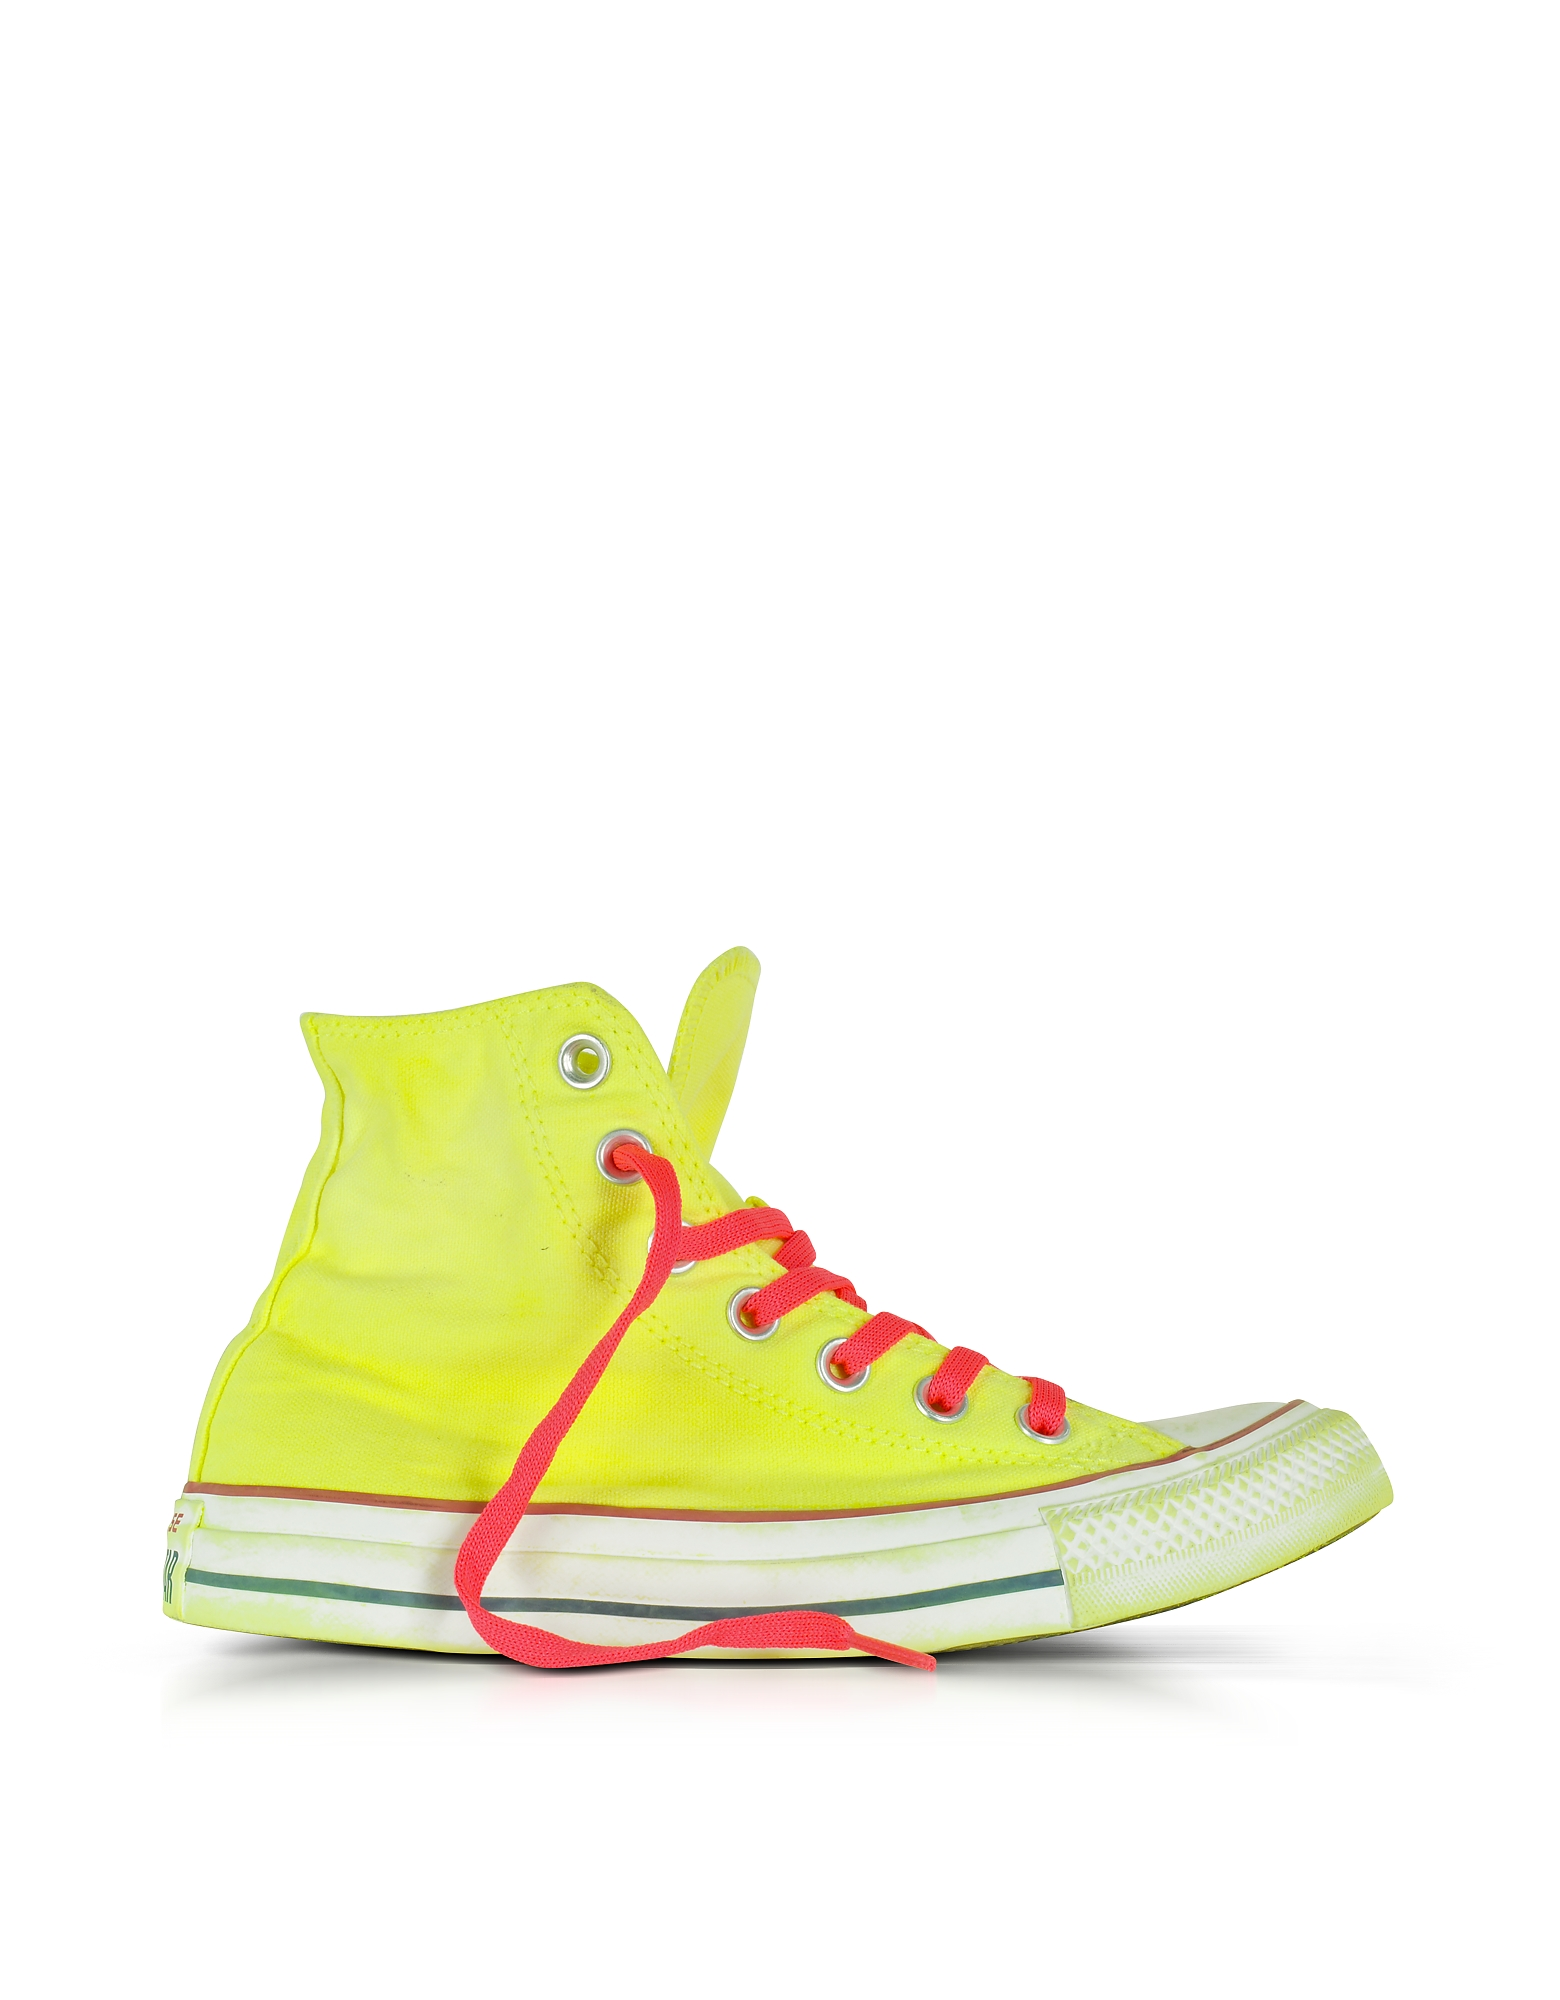 Converse Limited Edition Shoes, Chuck Taylor All Star Hi Neon Yellow Canvas LTD Sneakers